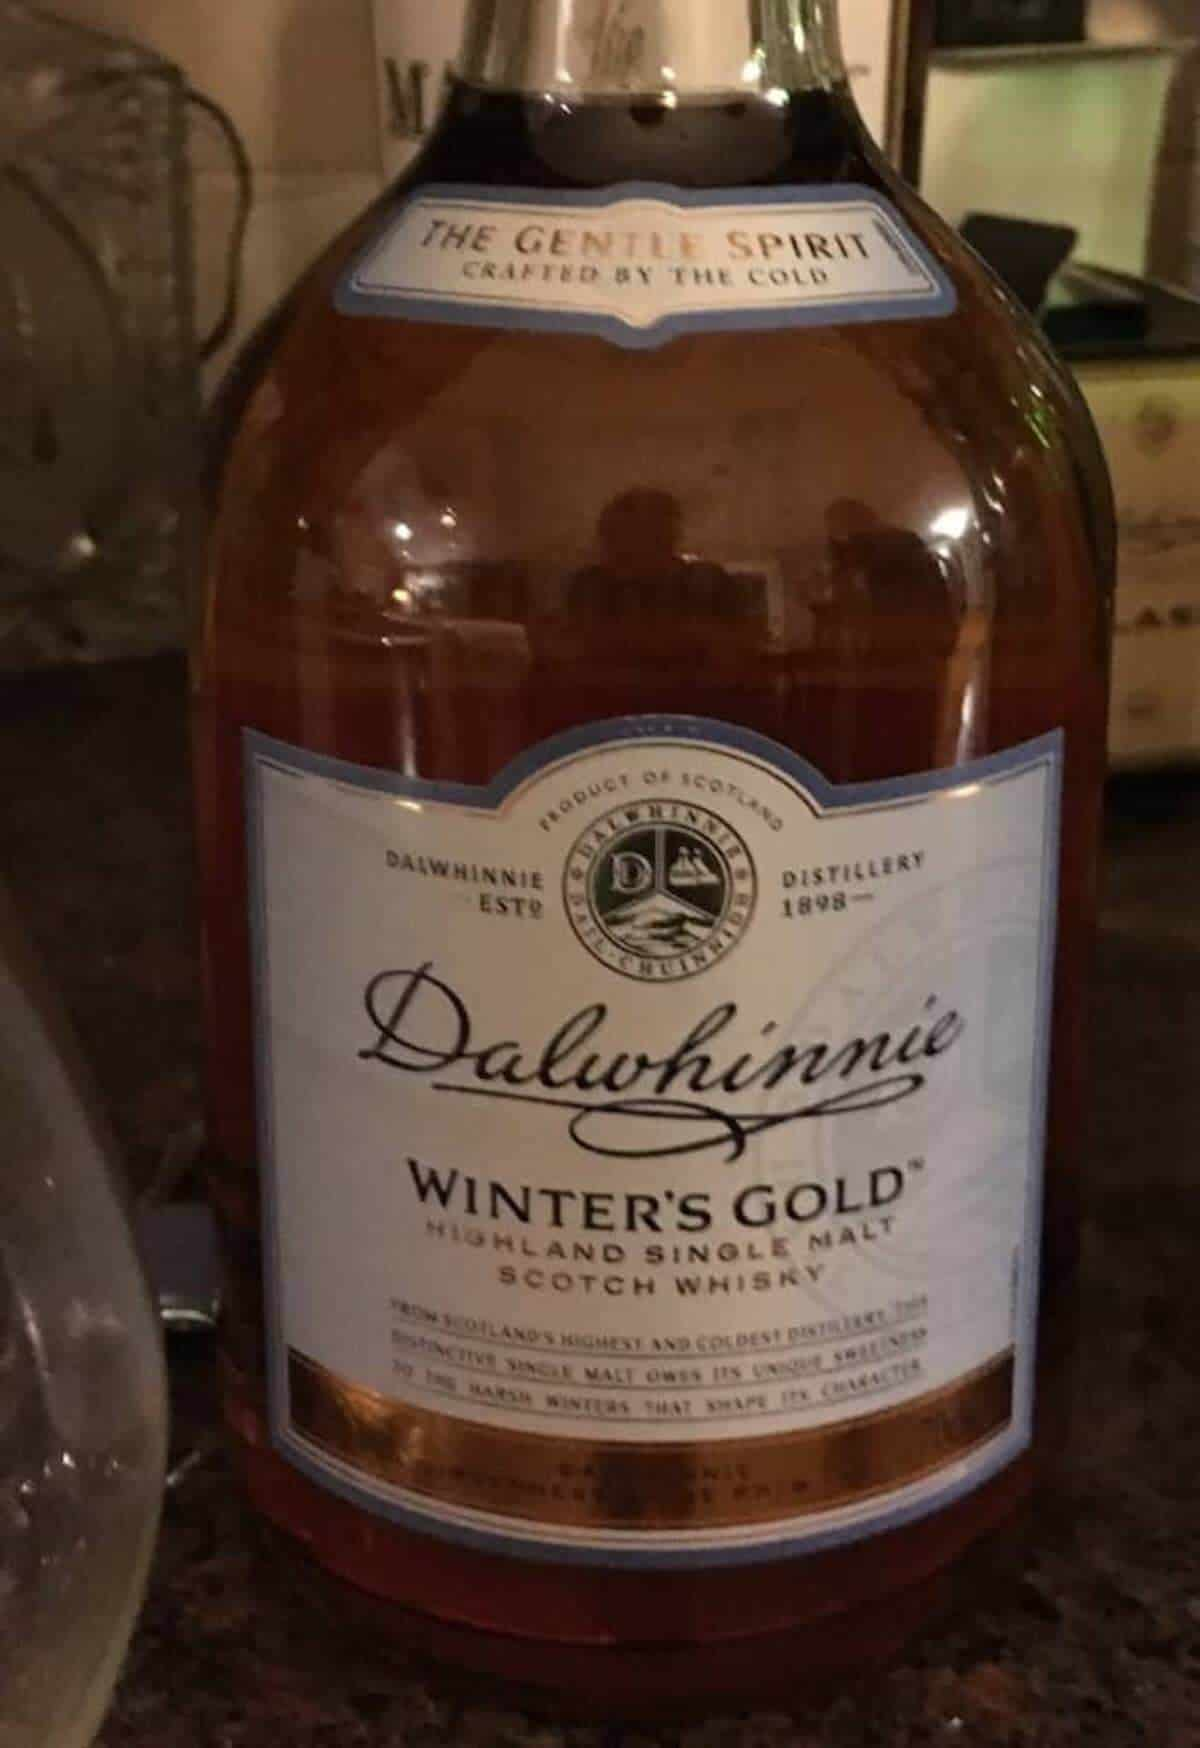 Dalwhinnie Winter's Gold bottle on a counter.